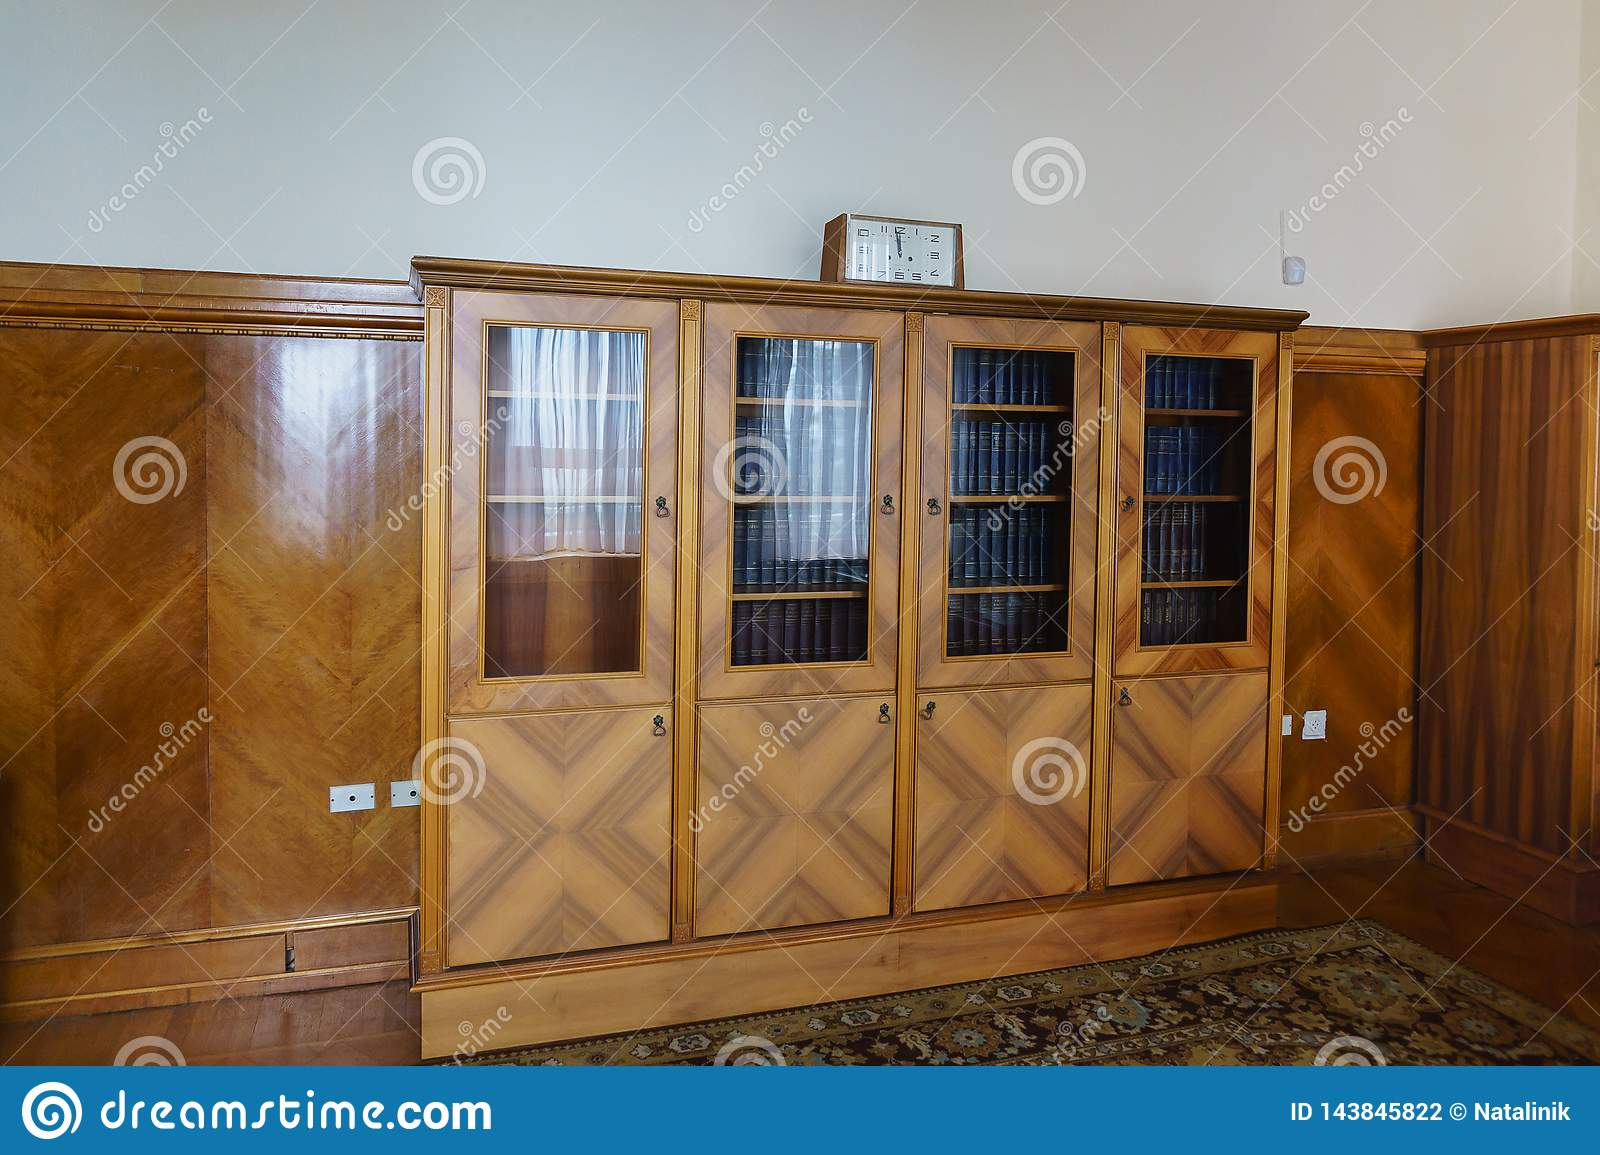 Bookcase in the office of Stalin`s apartment in the Yusupov Palace. On the shelves is the complete works of Lenin